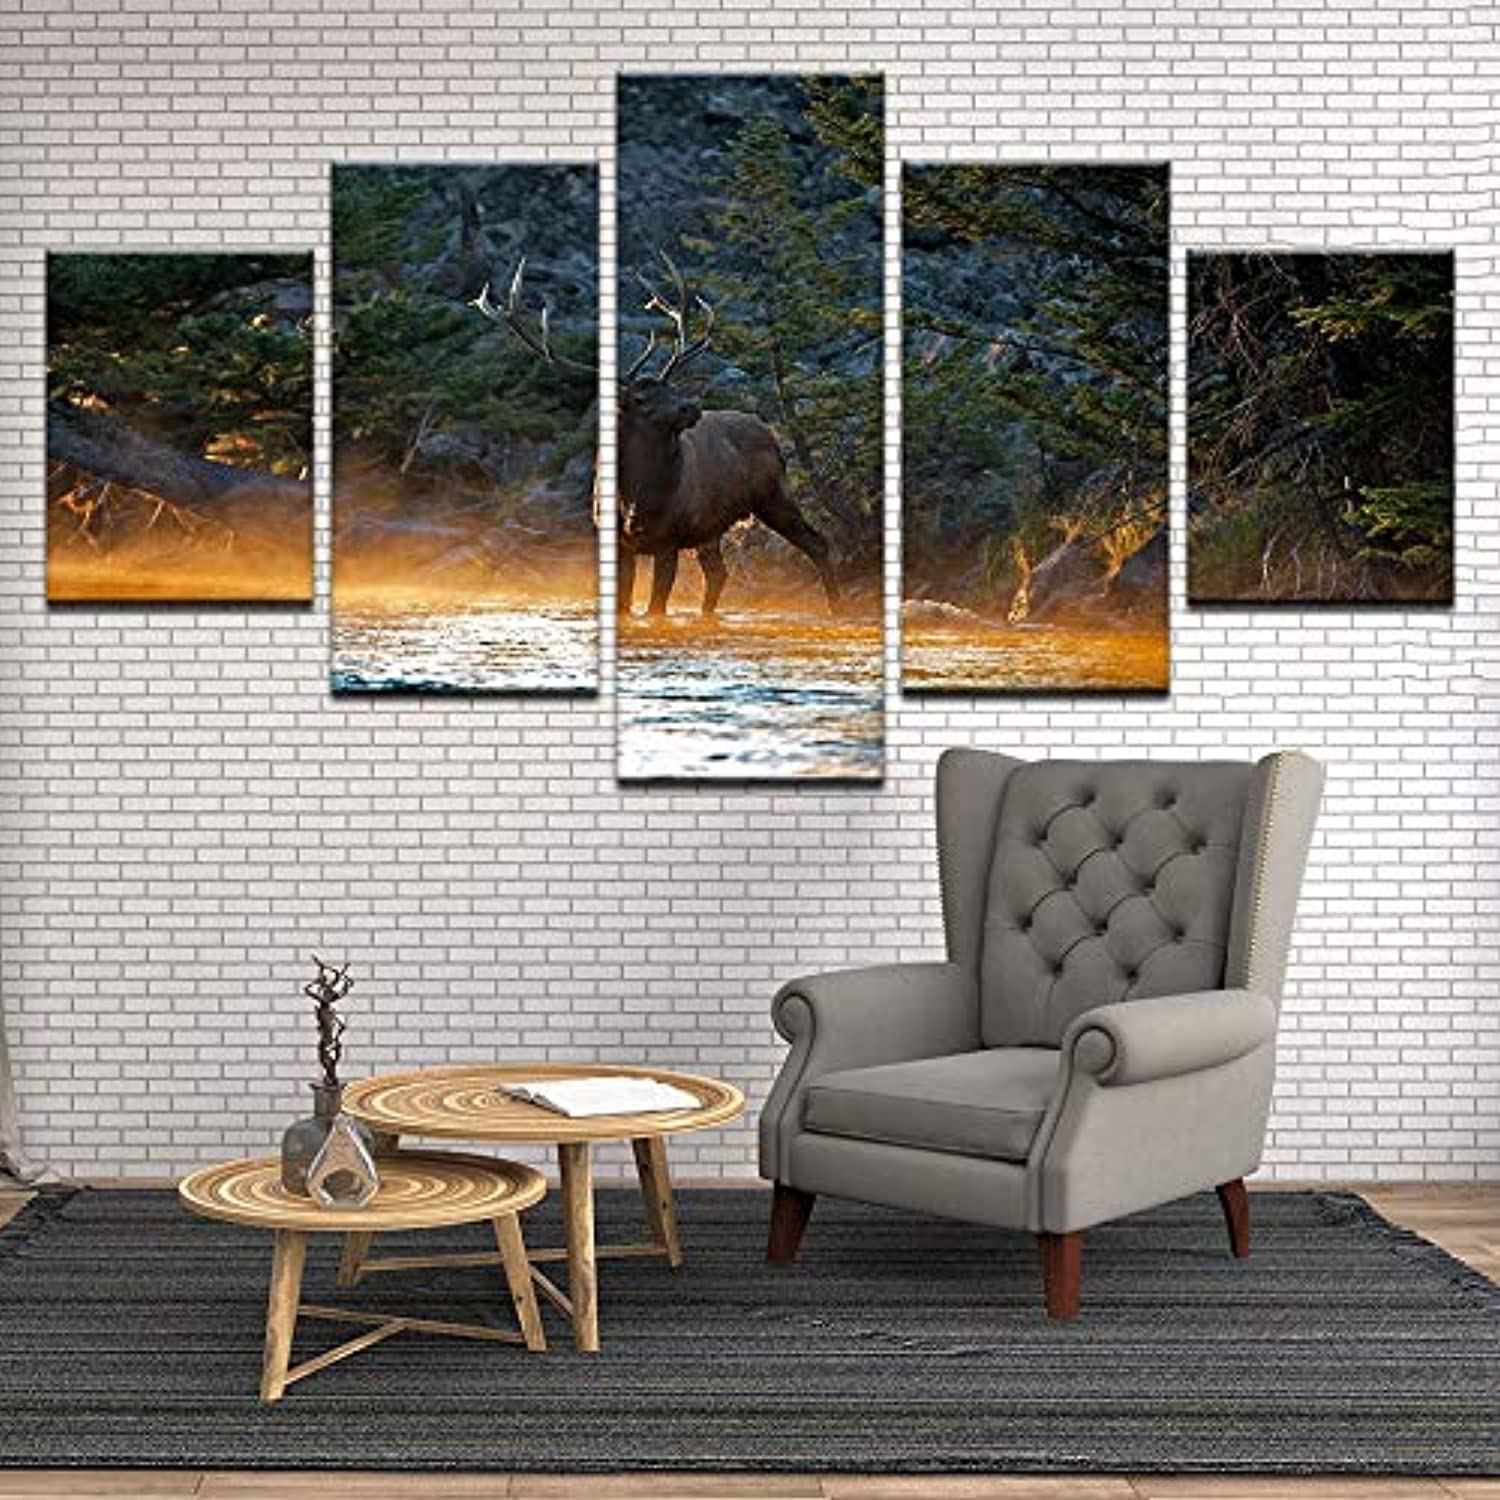 Natural Landspace Picture Animal Reindeer On Rorest River Home Wall Art 5 Piece Modular Pictures Living Room Decoration